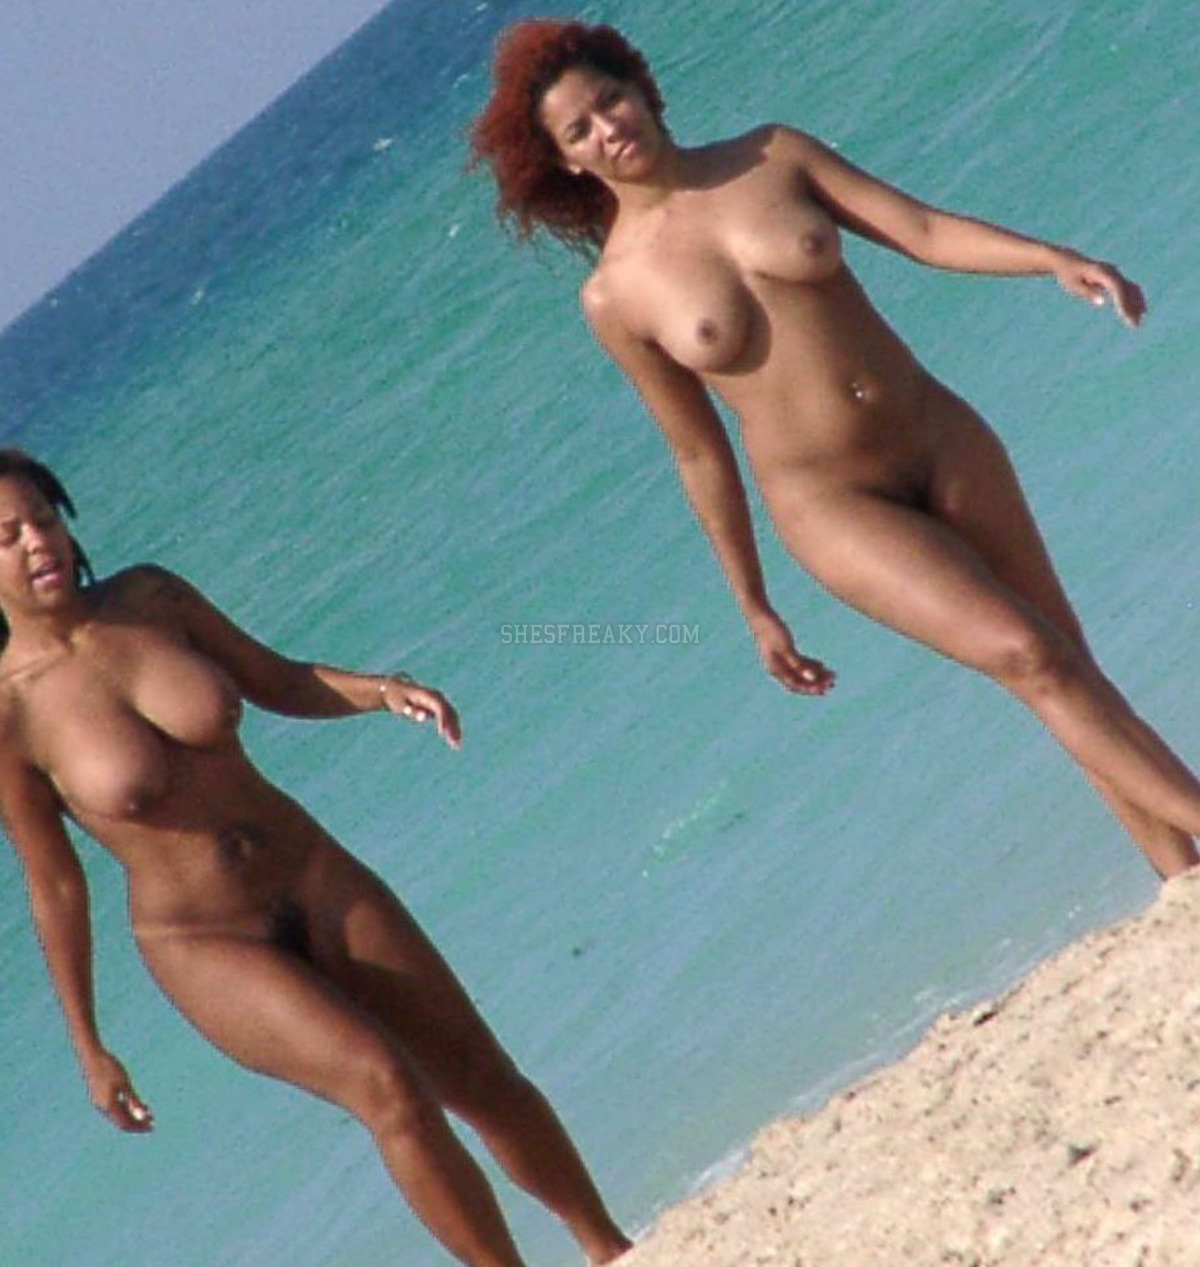 Nude Black Girl On Beach